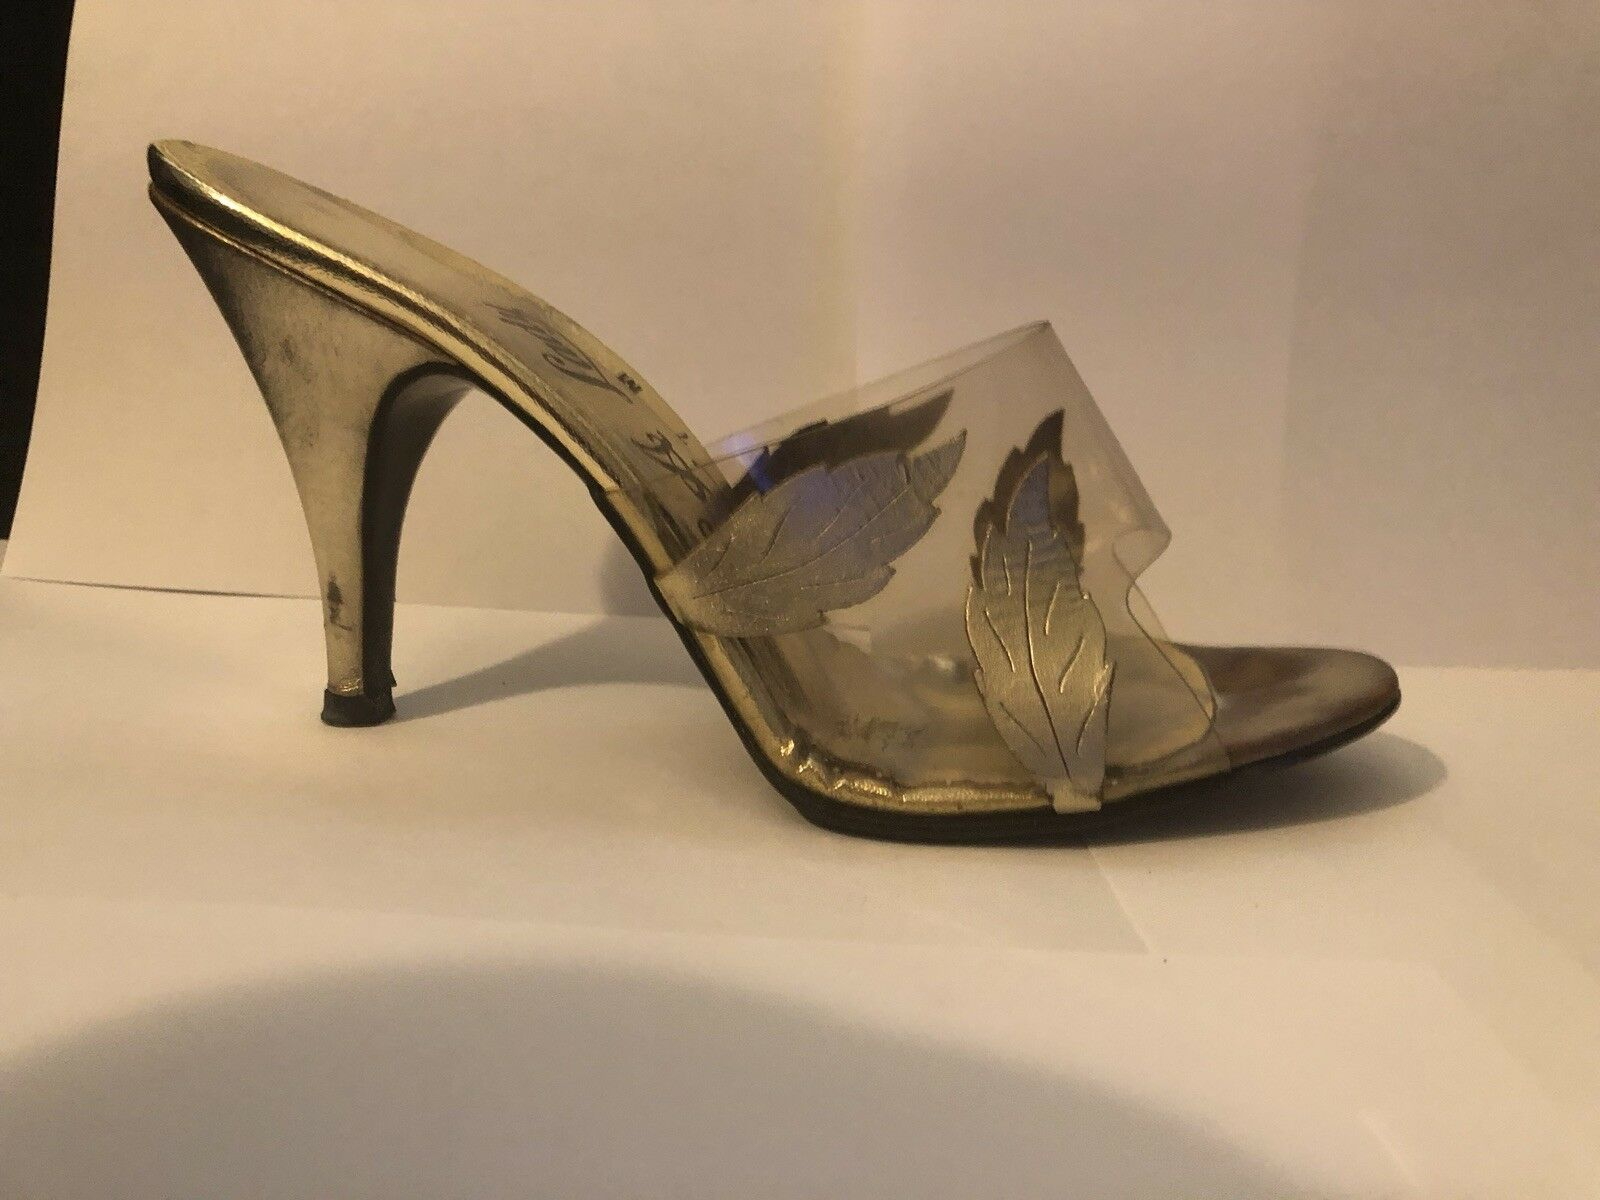 L. A. Lady High Heels Vintage Schuhes 7 M Gold Open Toe  Preowned